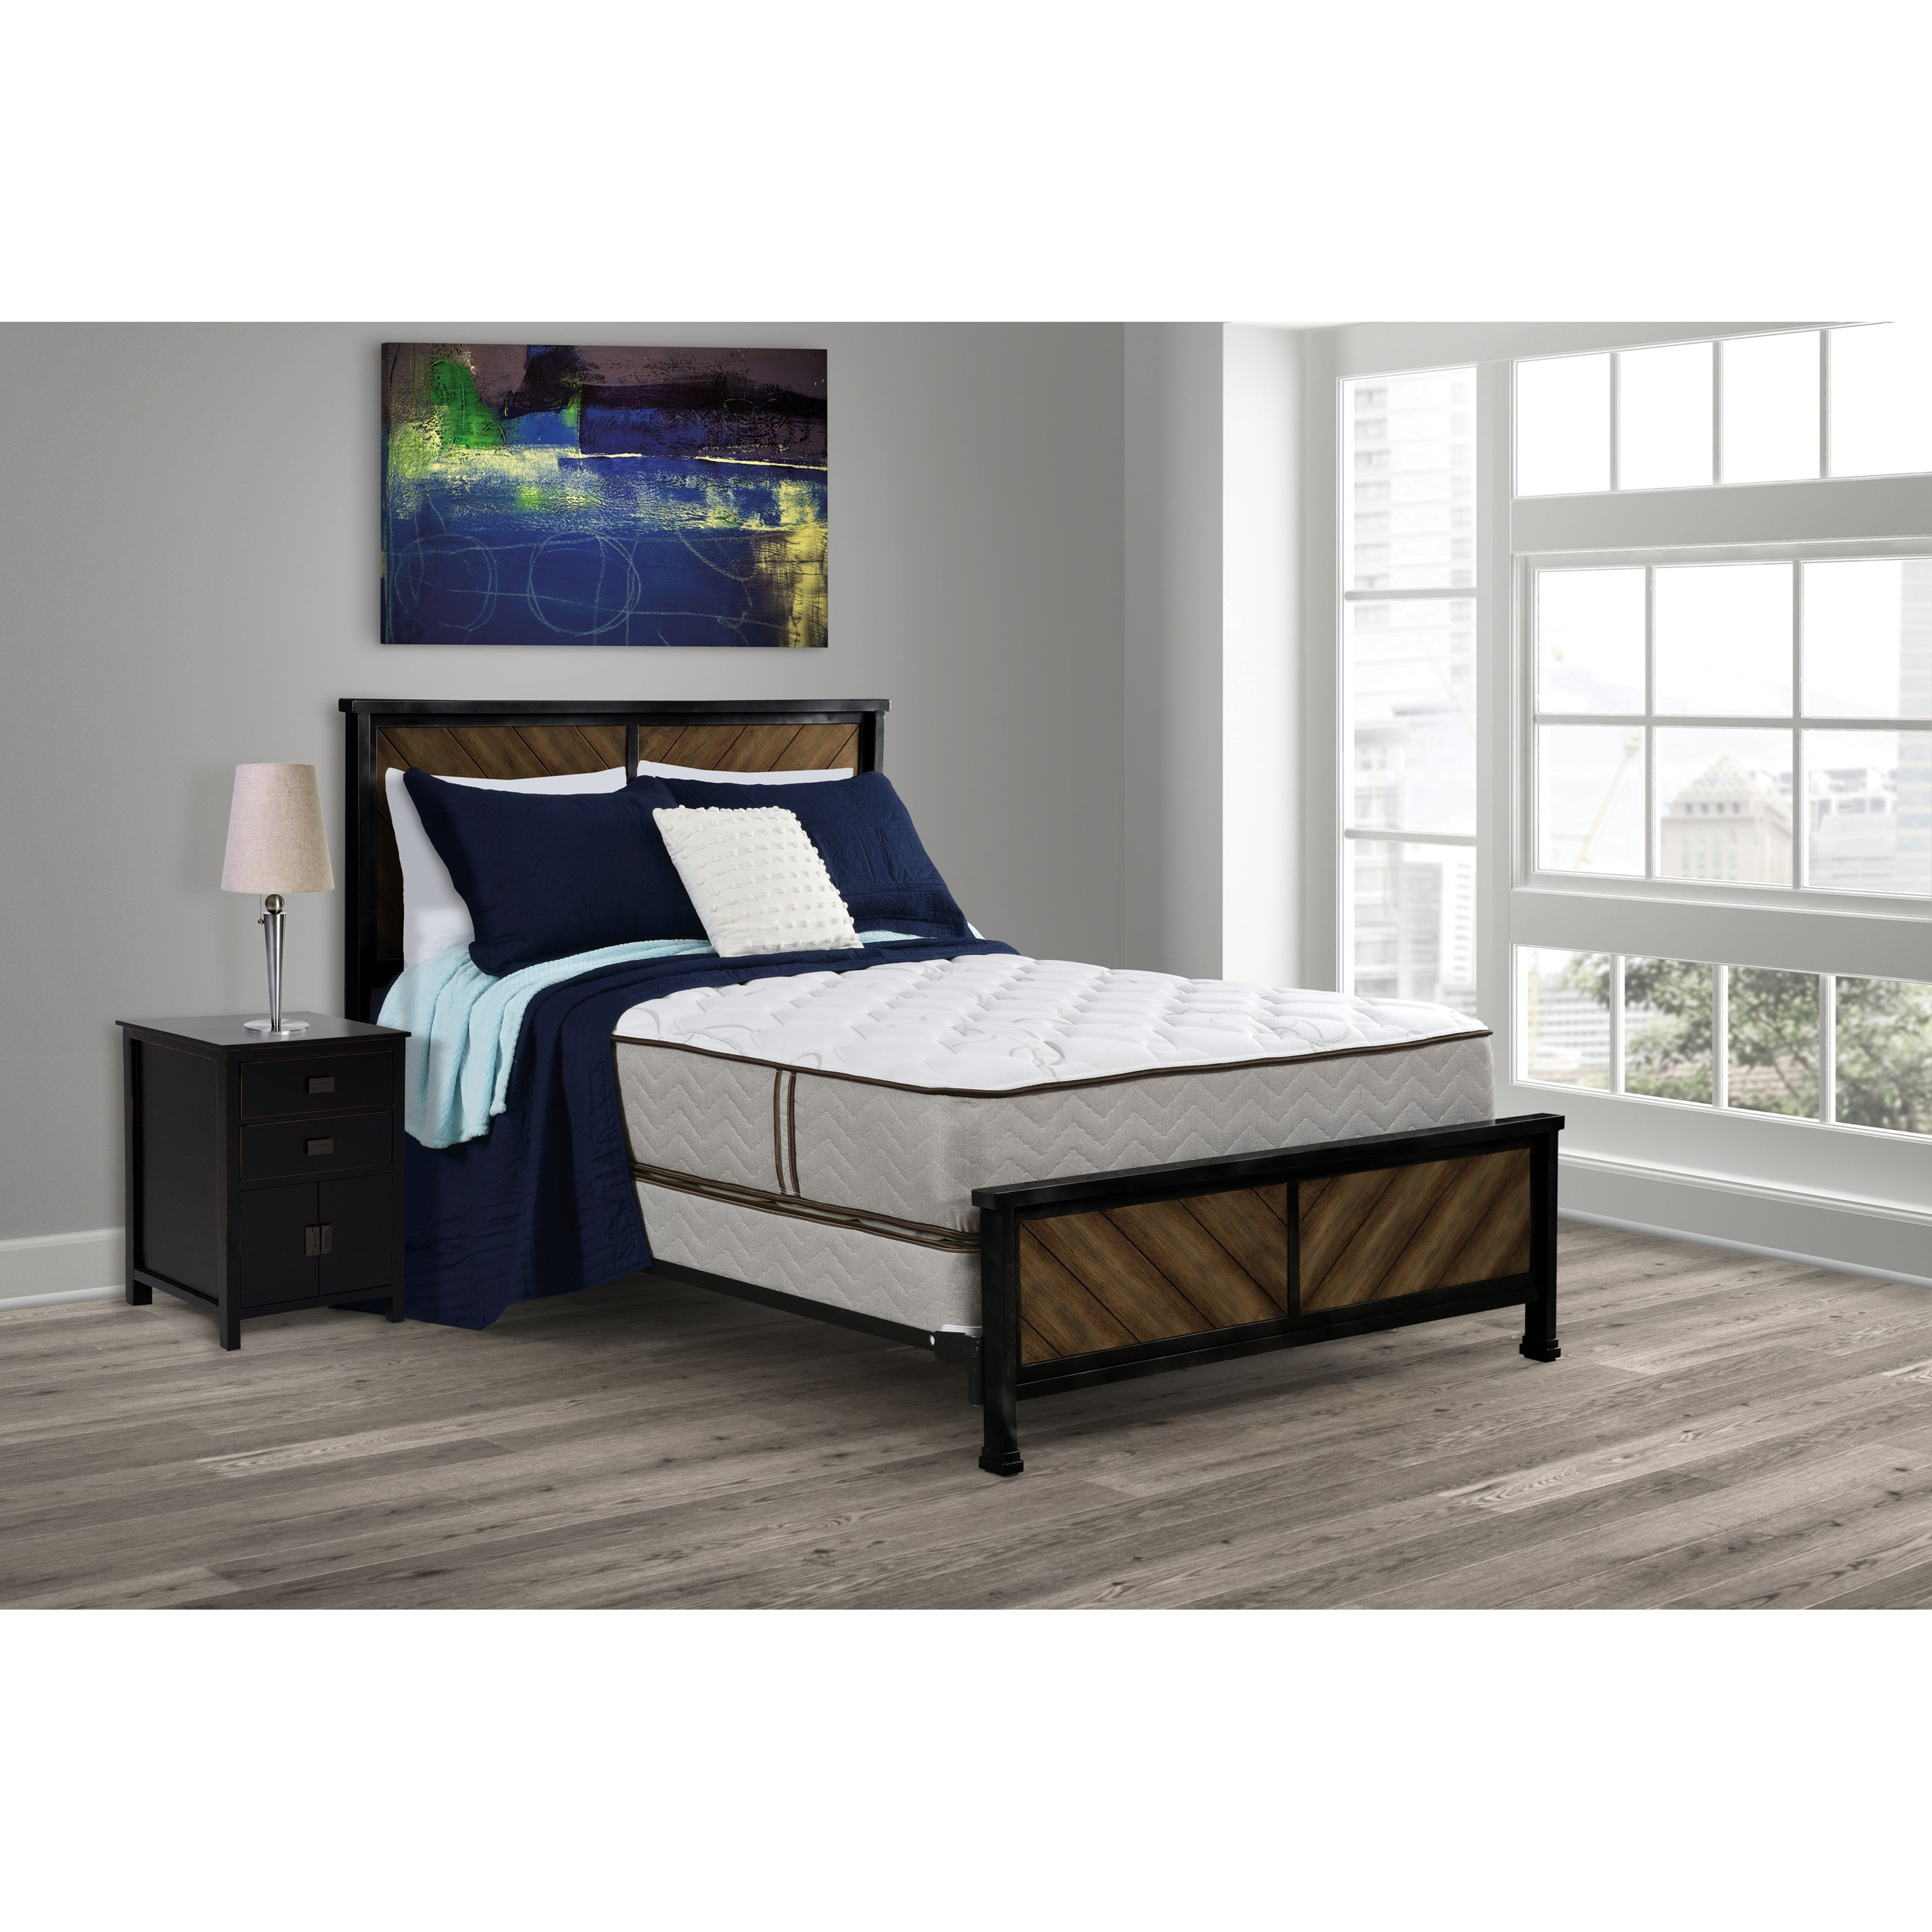 Monarch Elite Firm Full Firm DS Lo-Pro Innerspring Mattress Set by Amish Handcrafted at Saugerties Furniture Mart